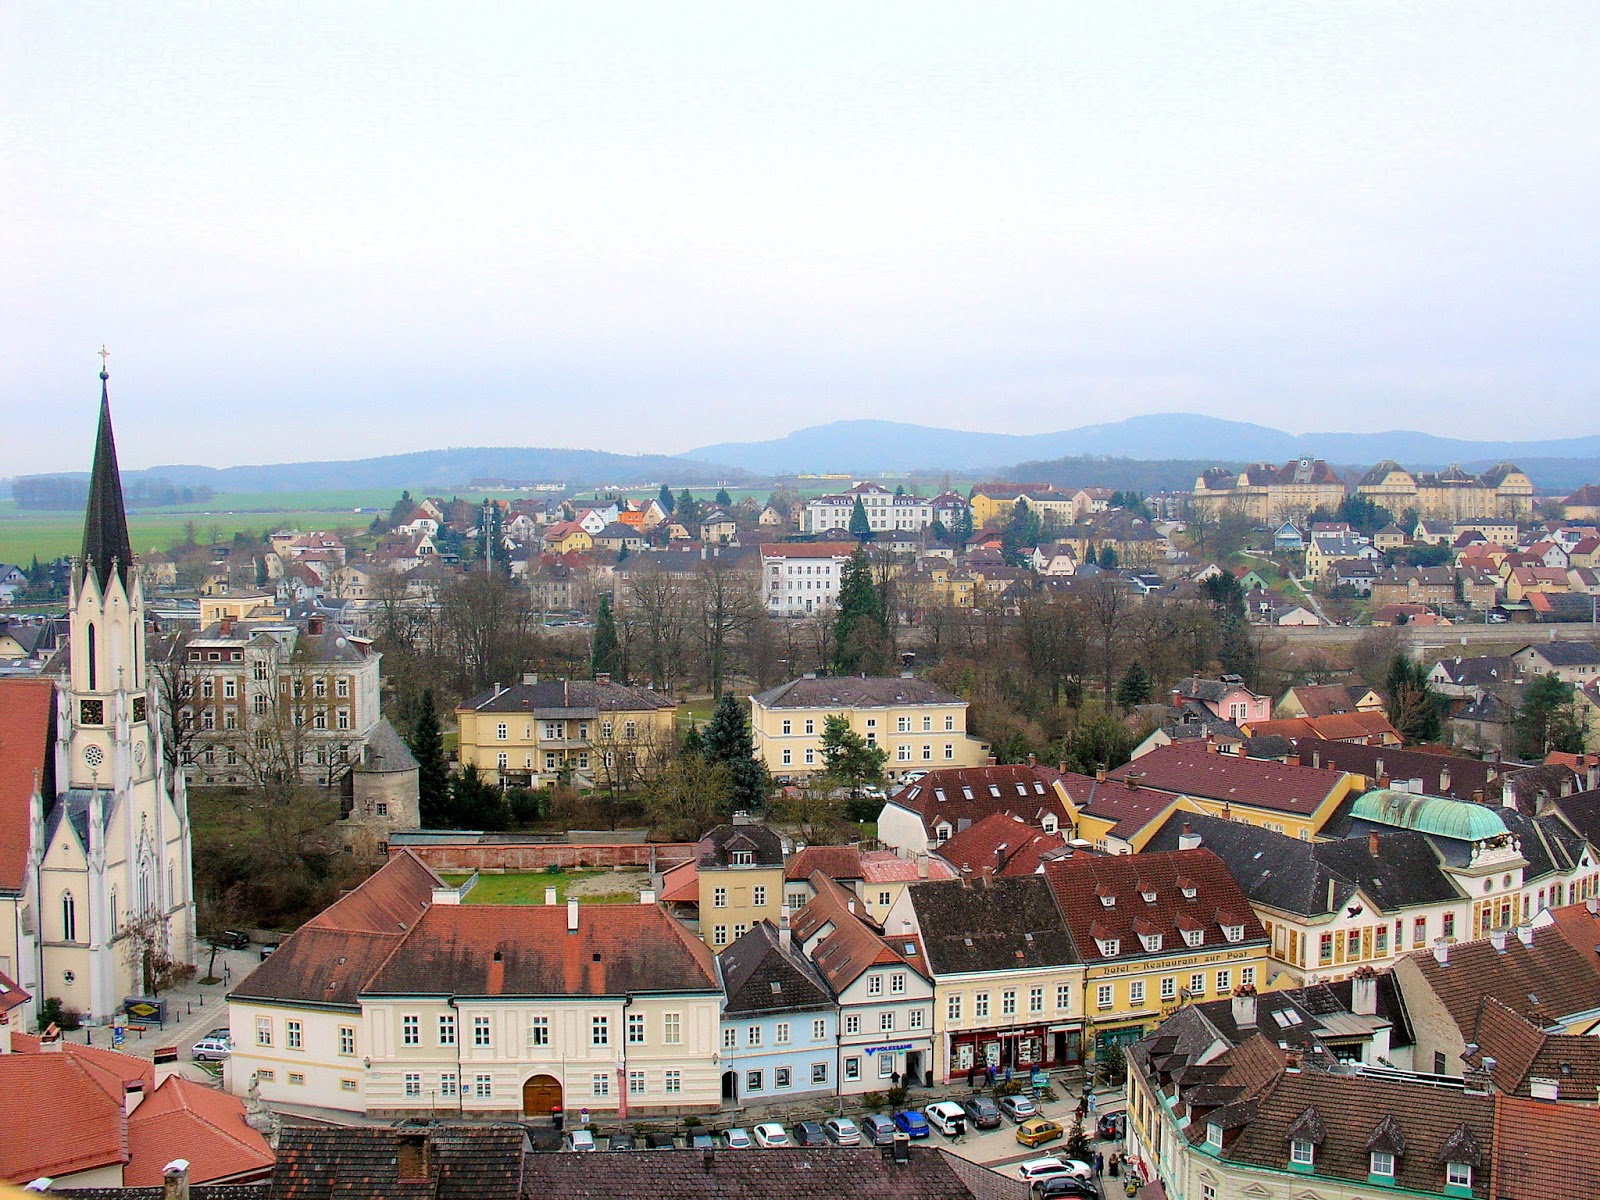 The village of Melk as seen from the Abbey, 200 feet above.